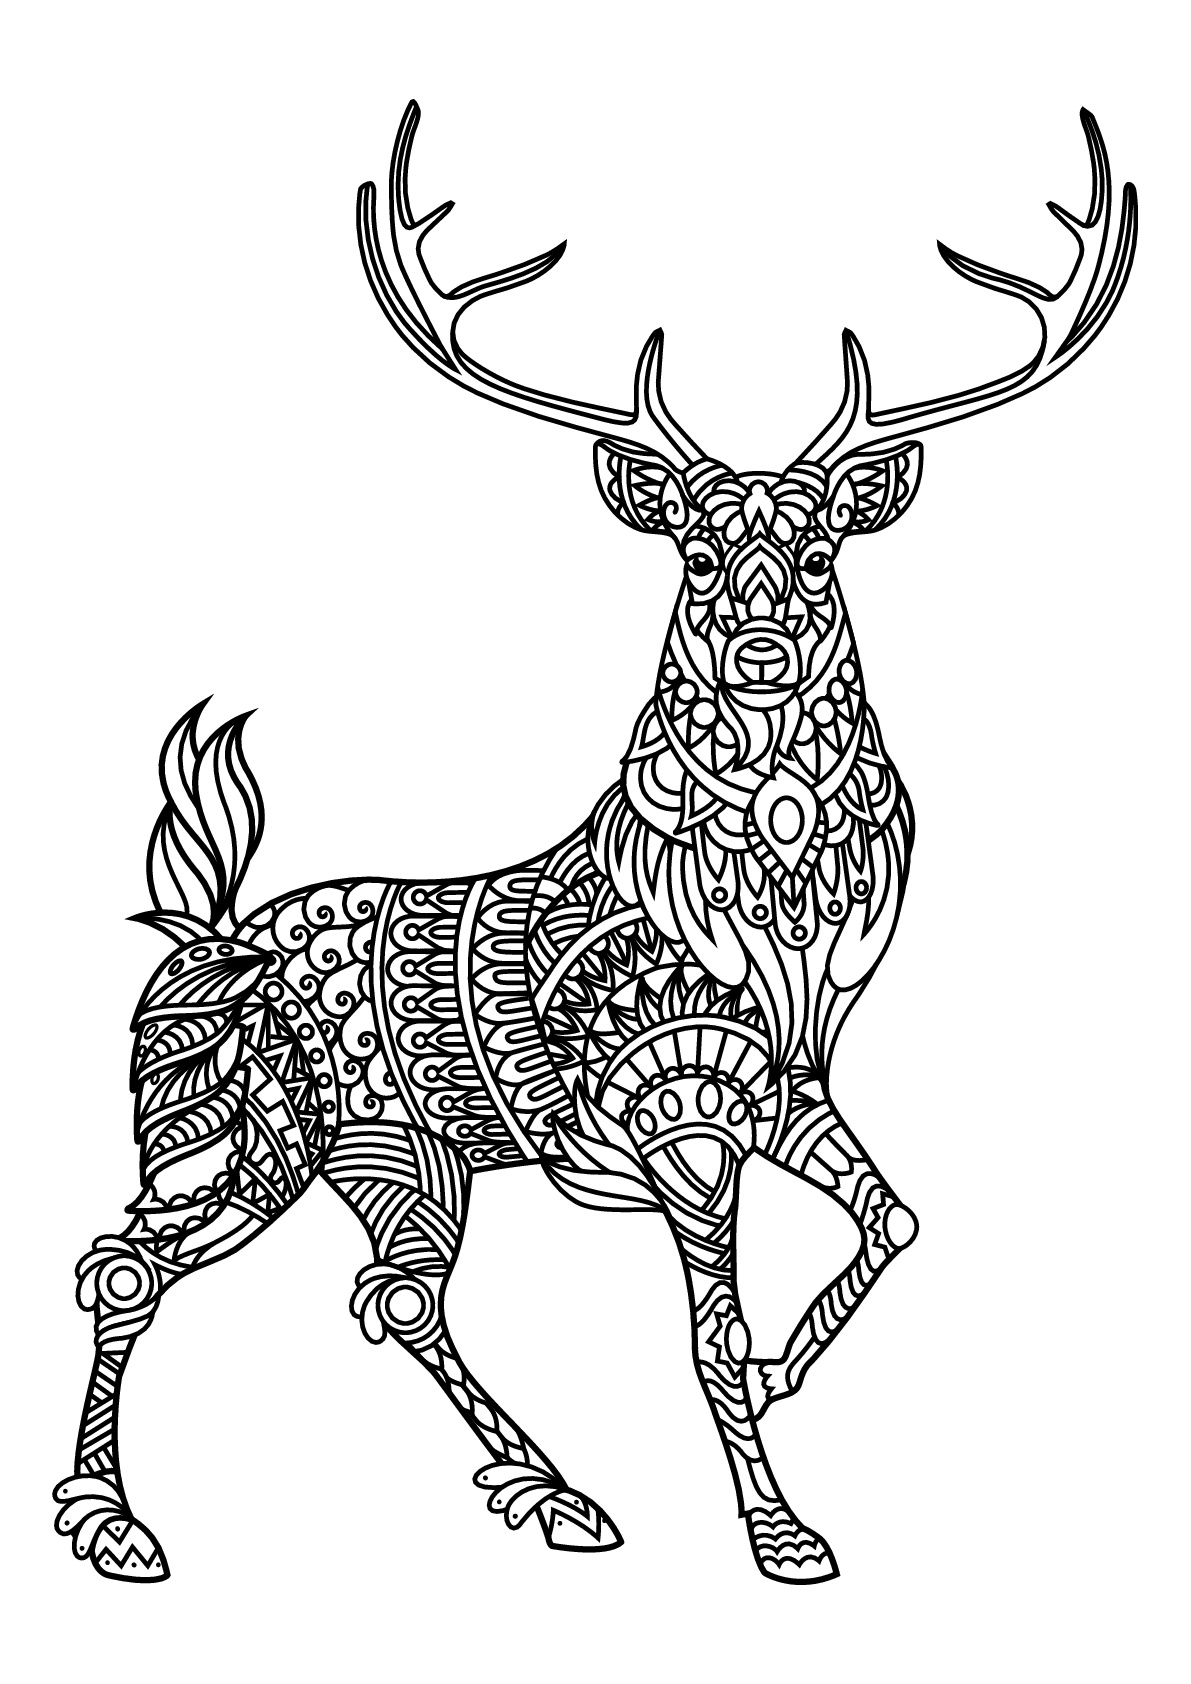 Deer, with complex and beautiful patterns